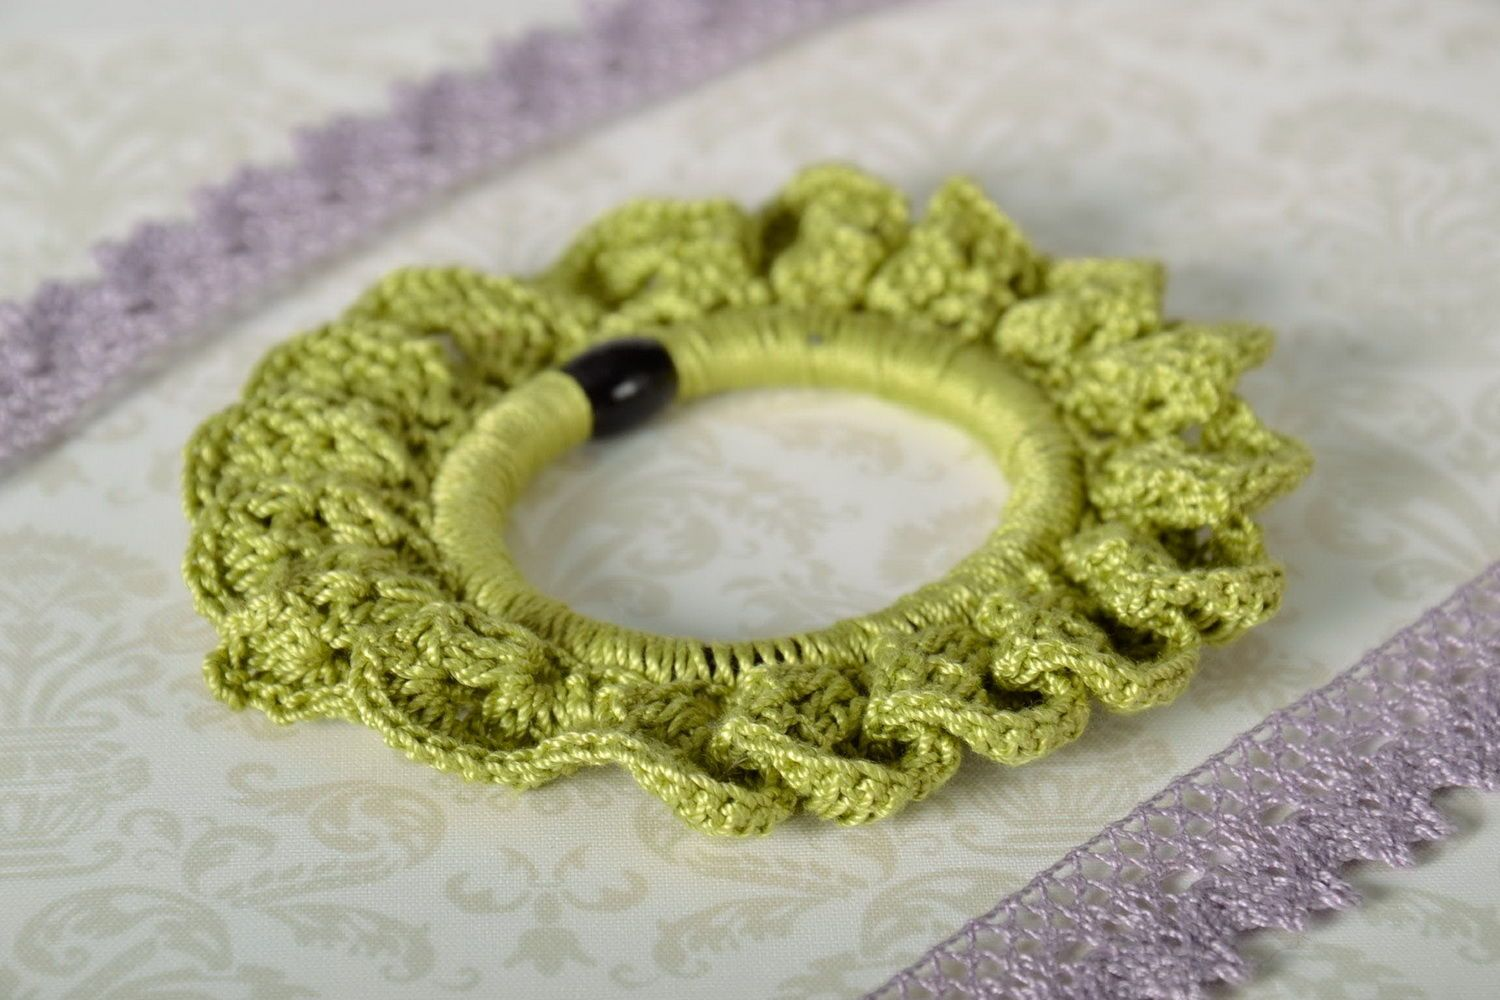 scrunchies Scrunchy tied around with cotton threads - MADEheart.com